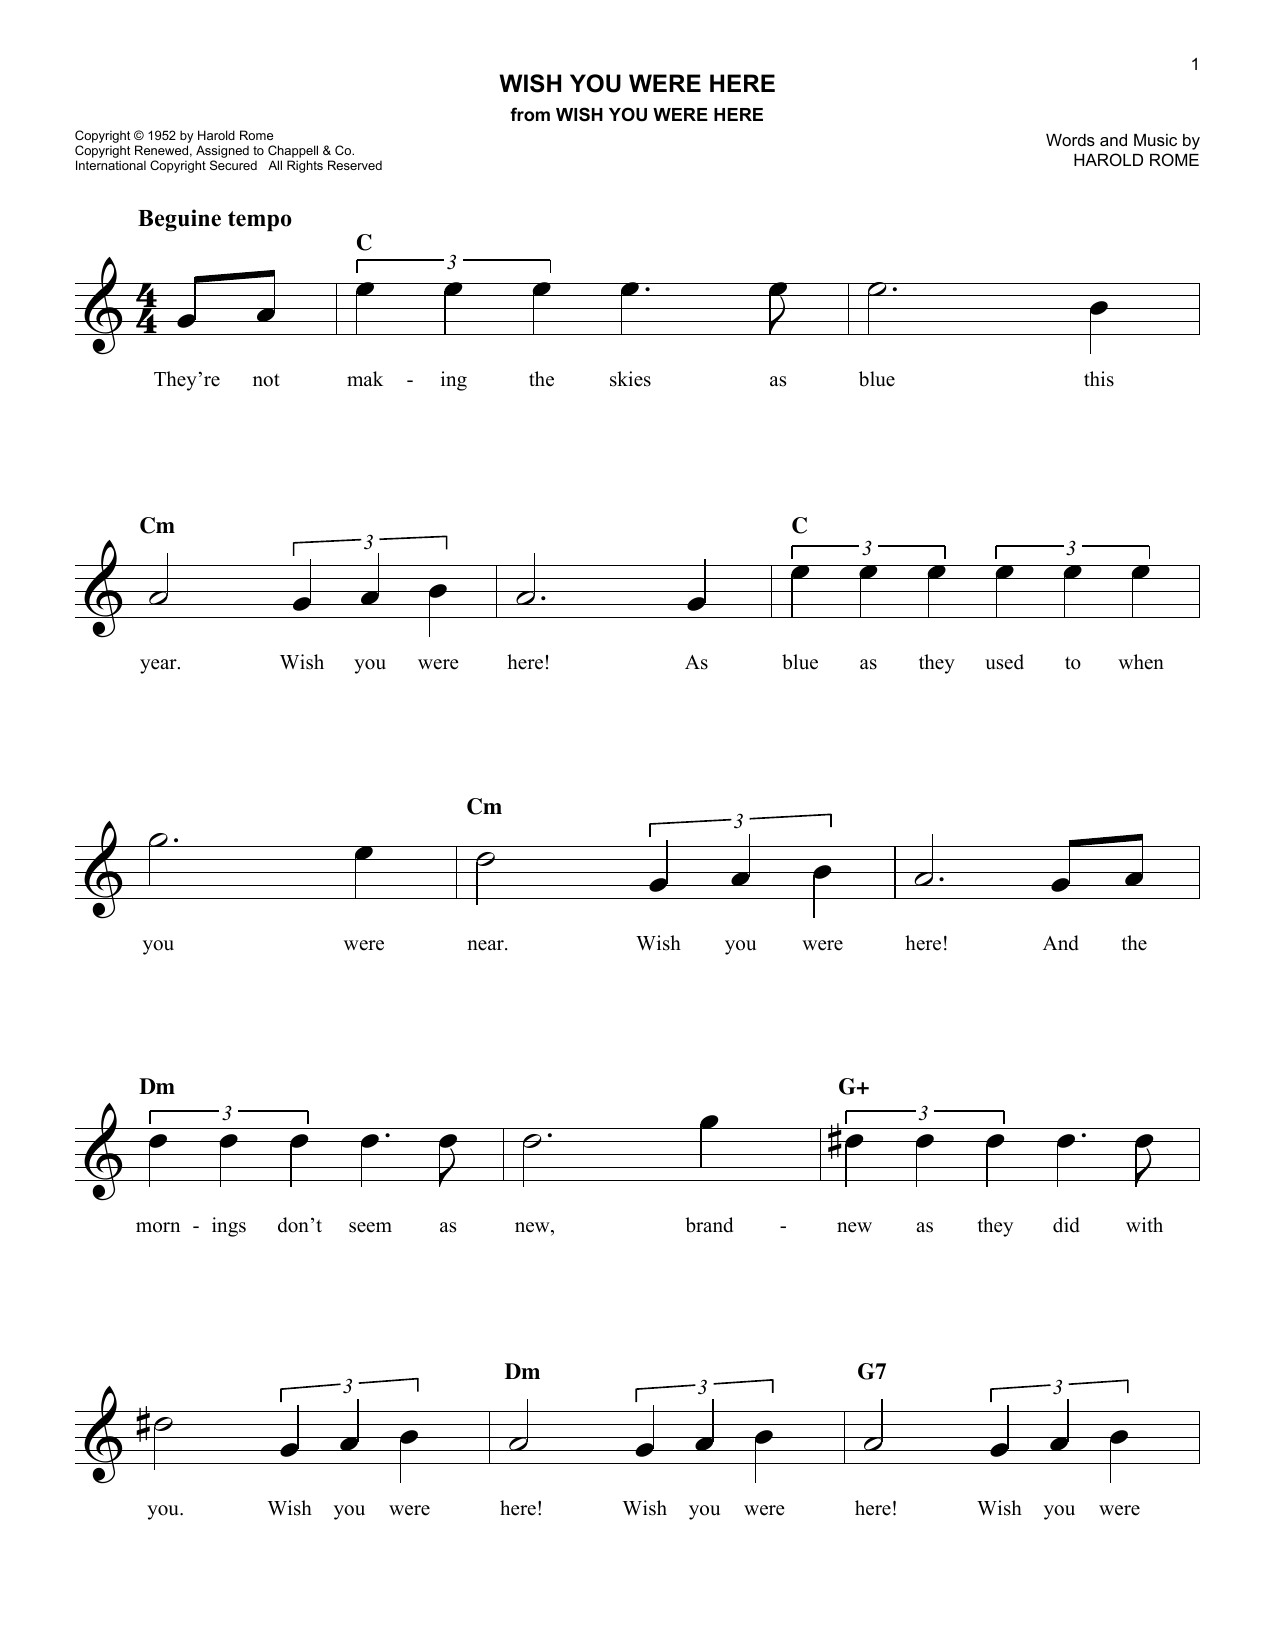 Wish you were here chords by harold rome melody line lyrics harold rome wish you were here melody line lyrics chords hexwebz Gallery